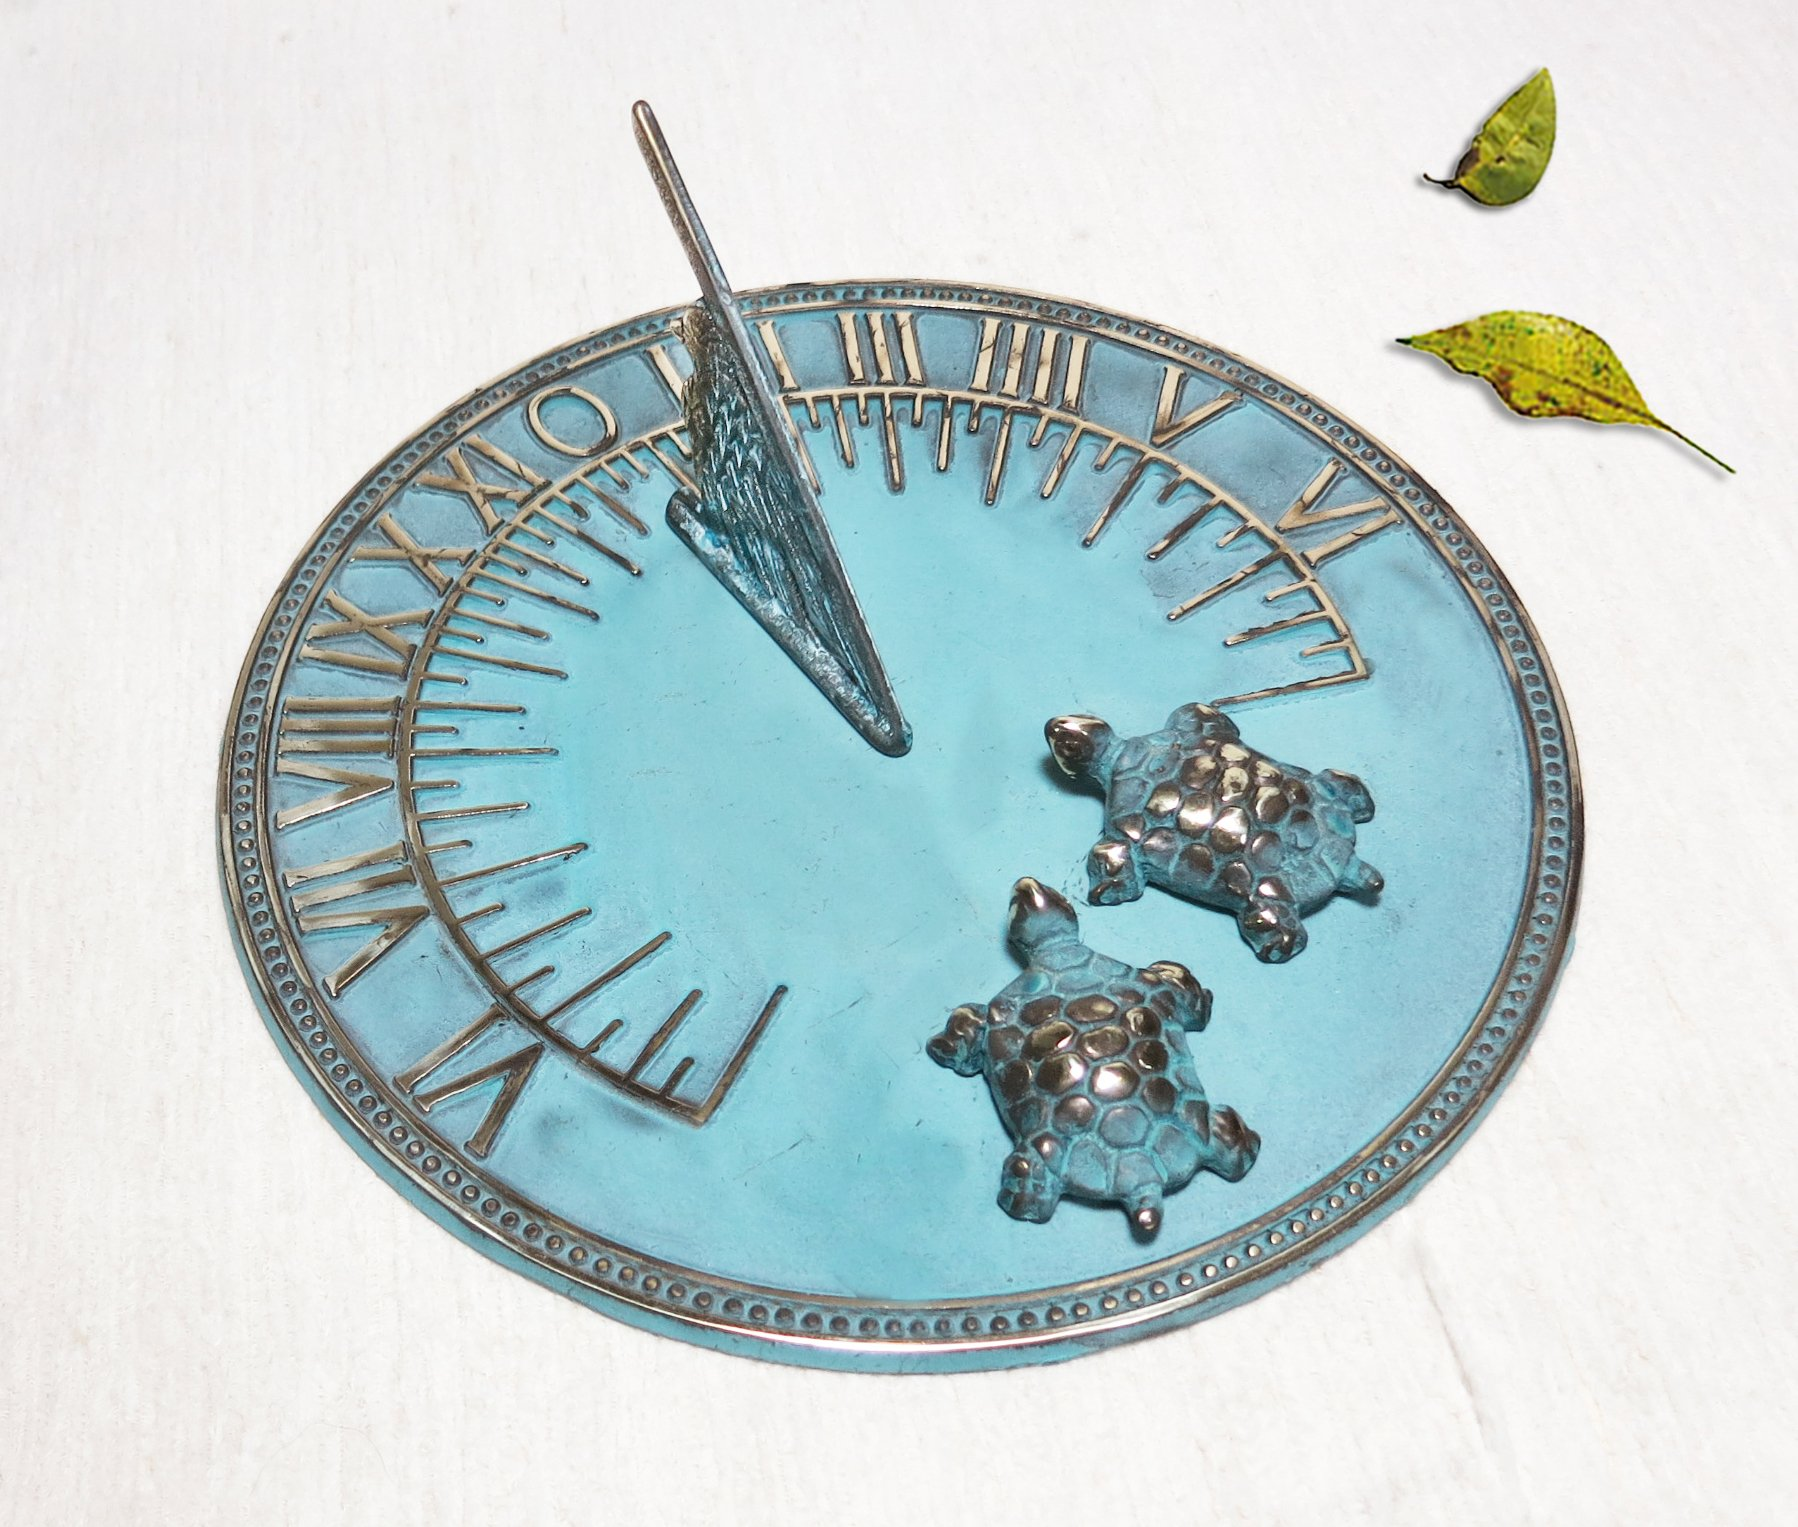 Brass Decorative Sundial 8'' Inches Wide - With 2 Little Turtles